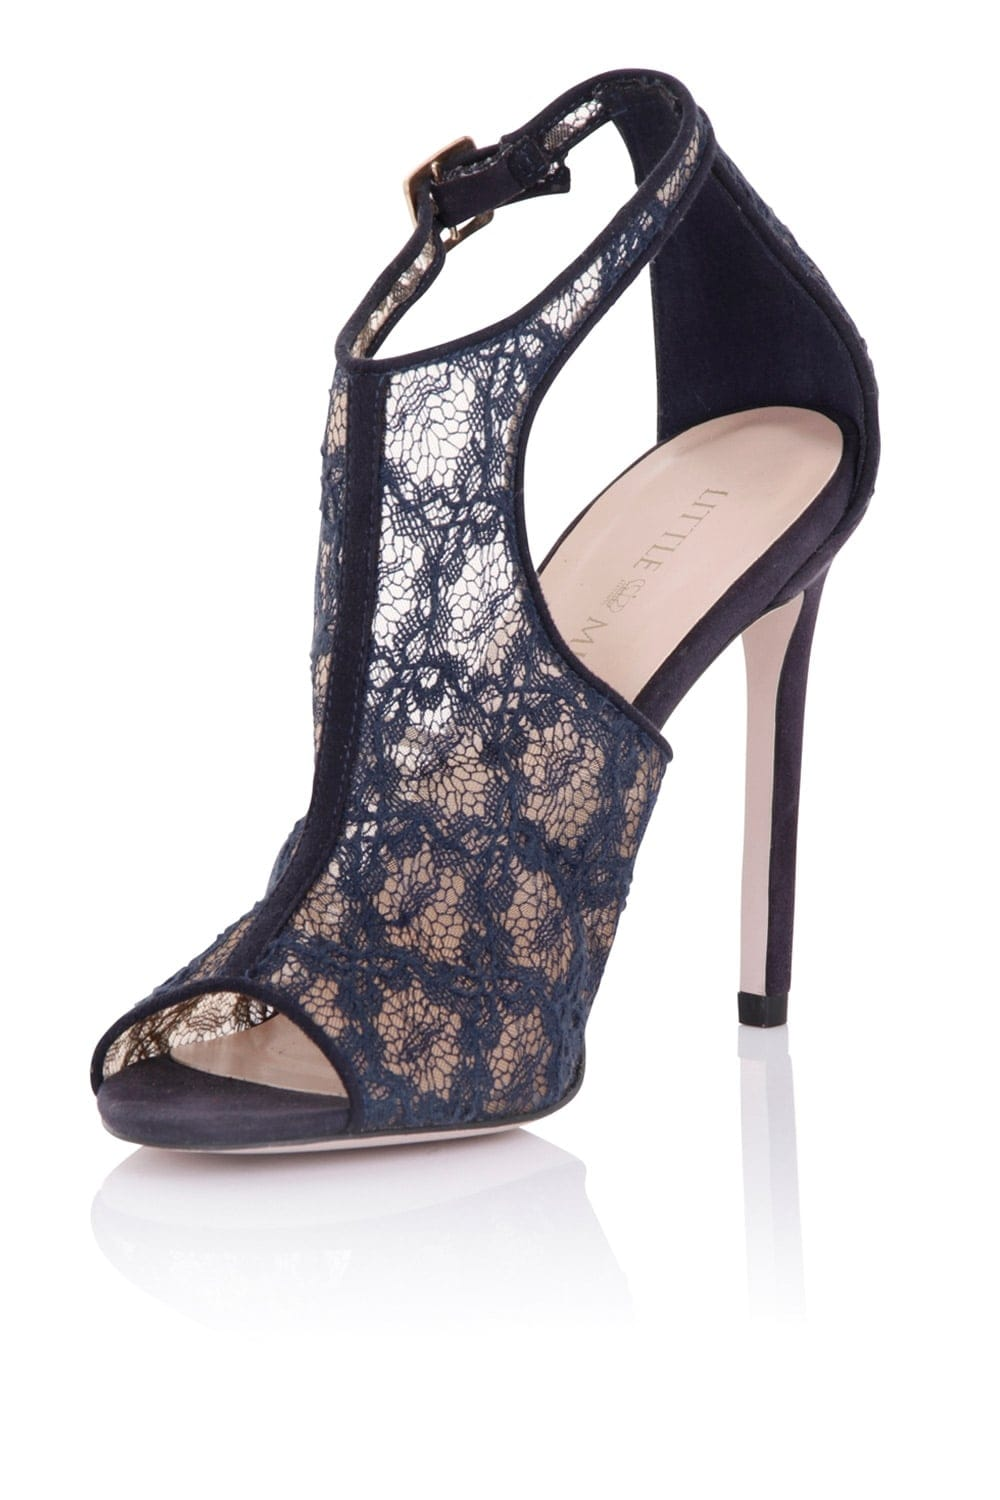 lace shoes for wedding photo - 1